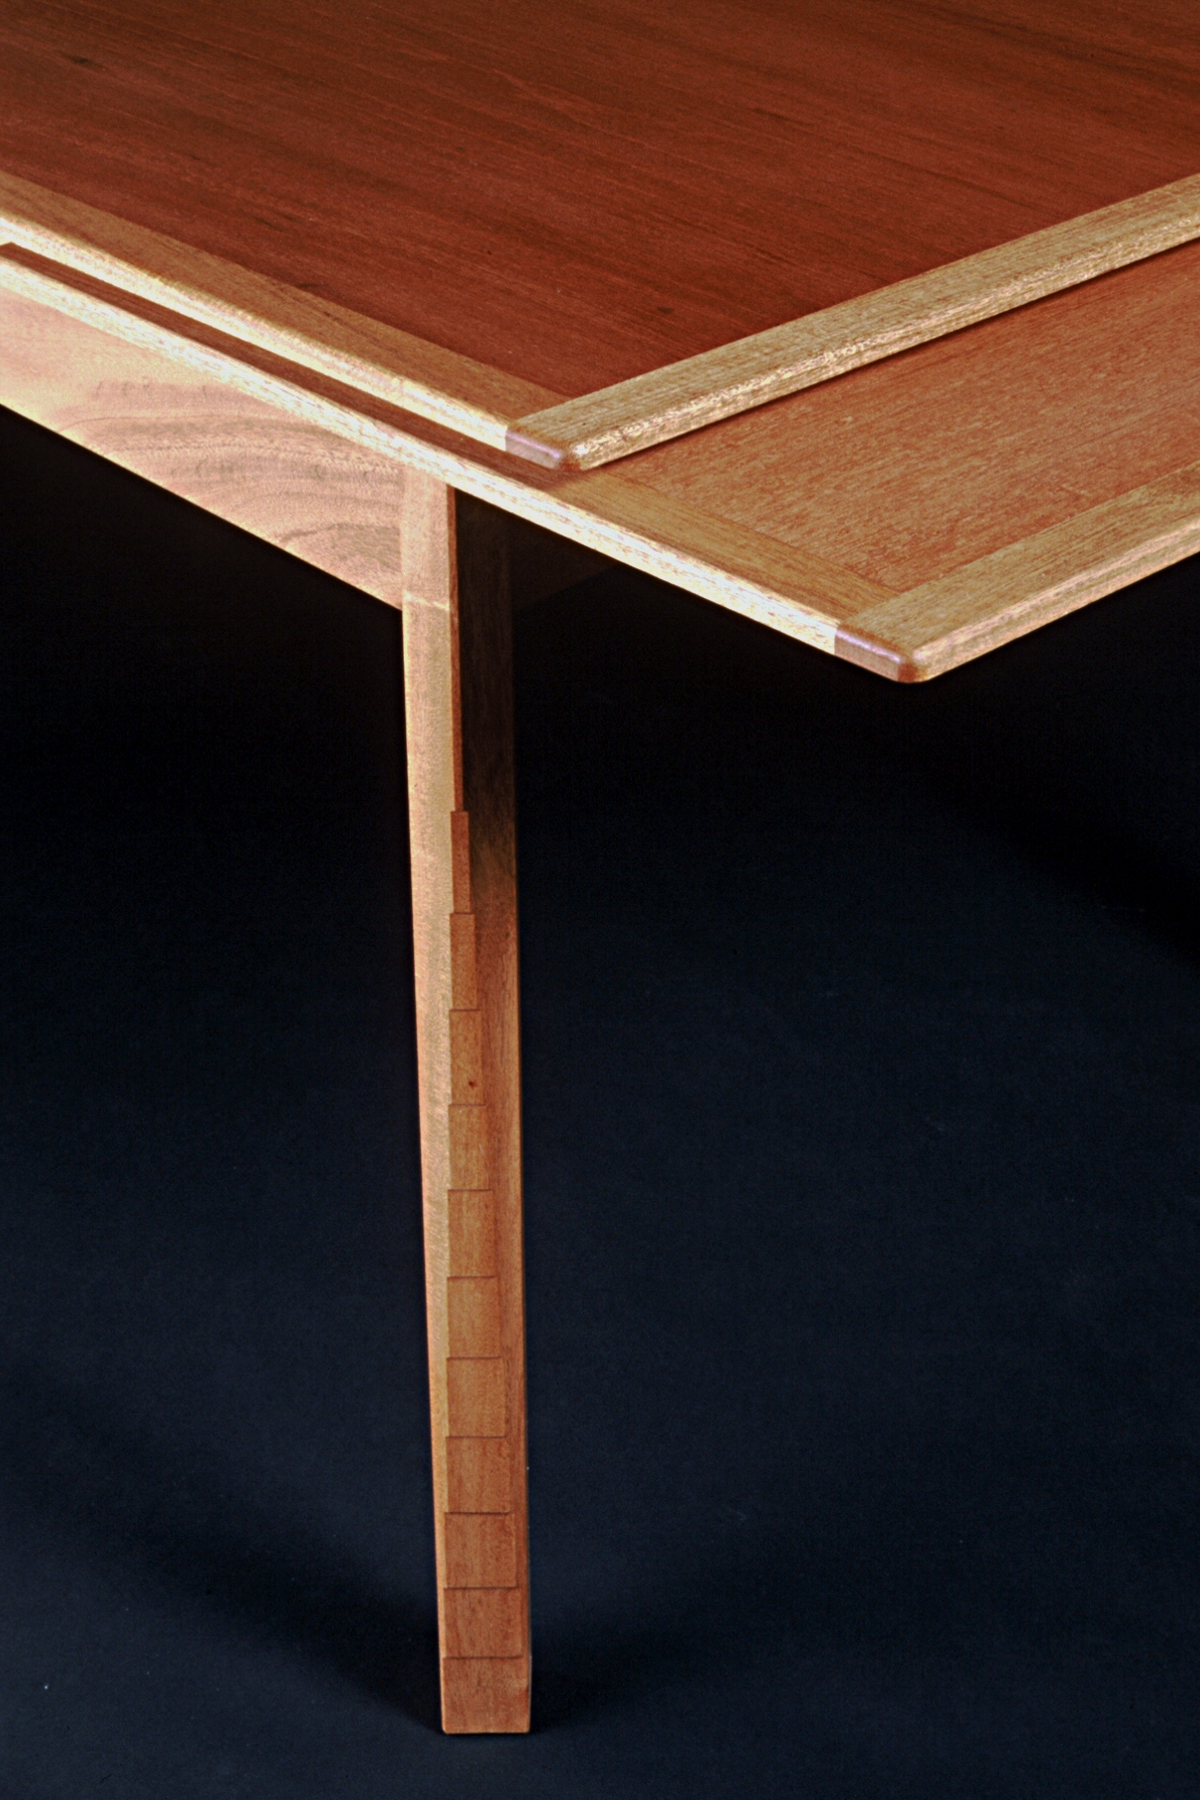 Dining Table detail